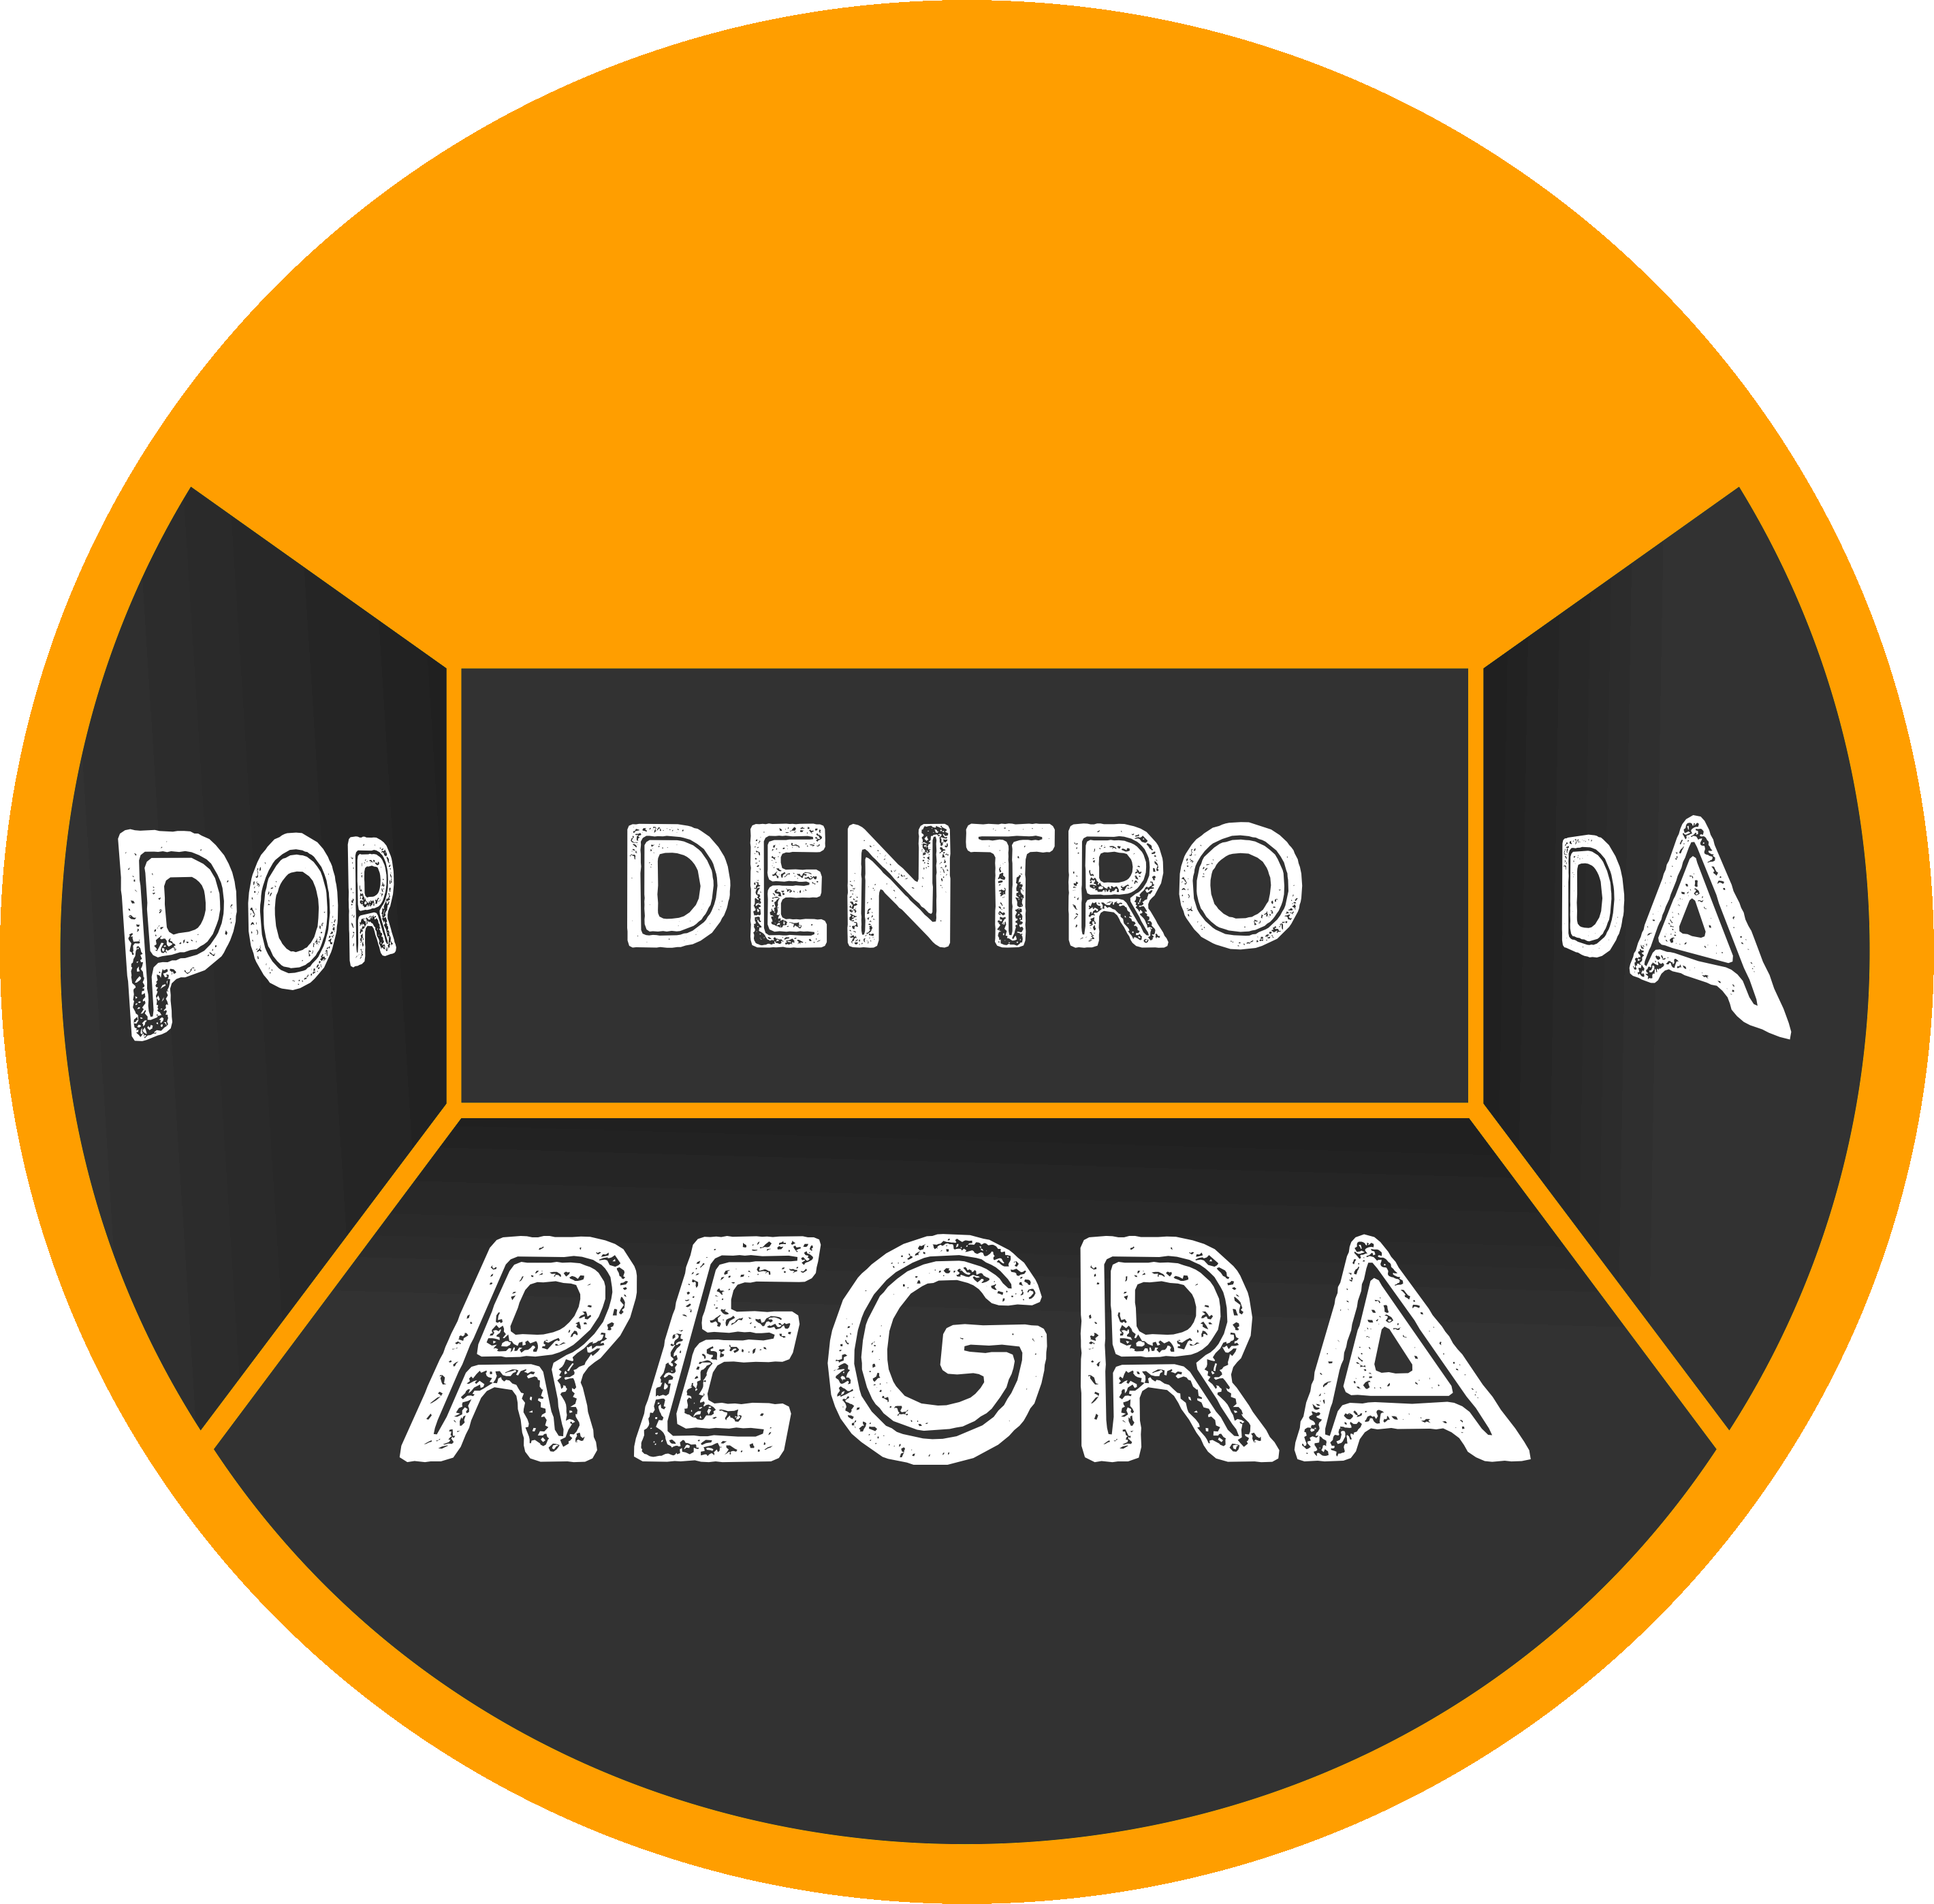 Por dentro da Regra